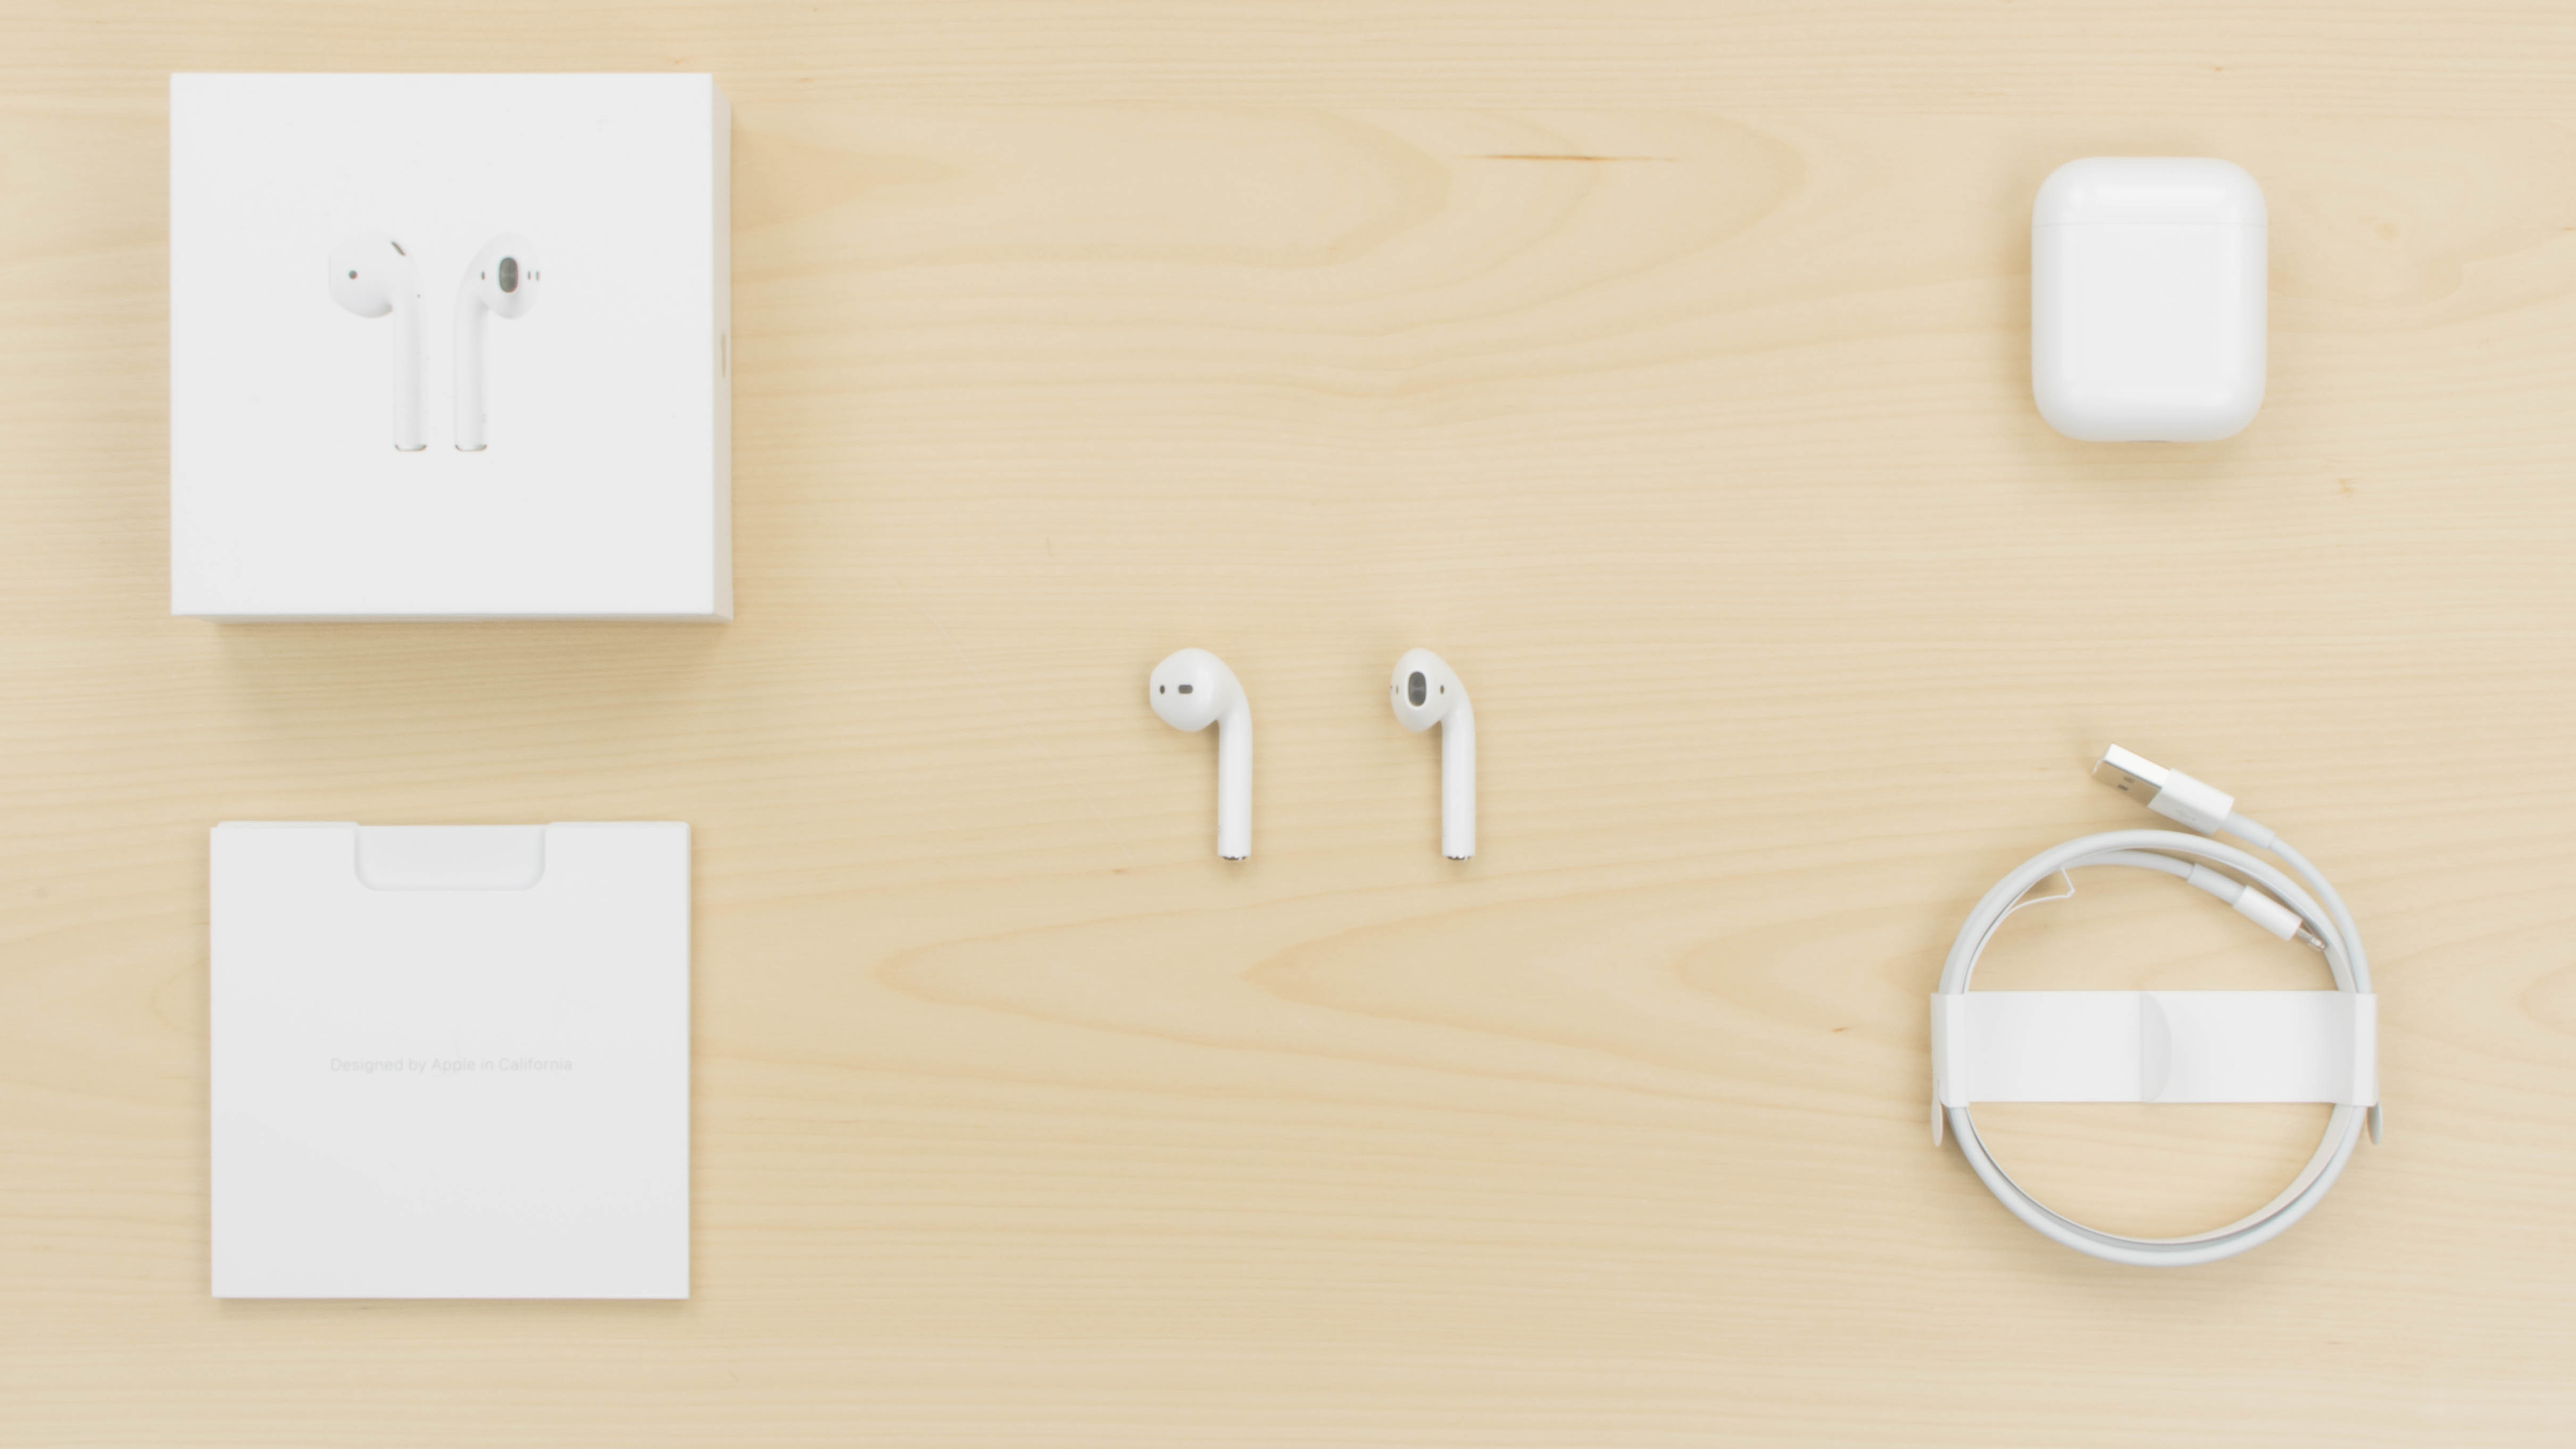 Apple airpods wireless review for Mac due the box